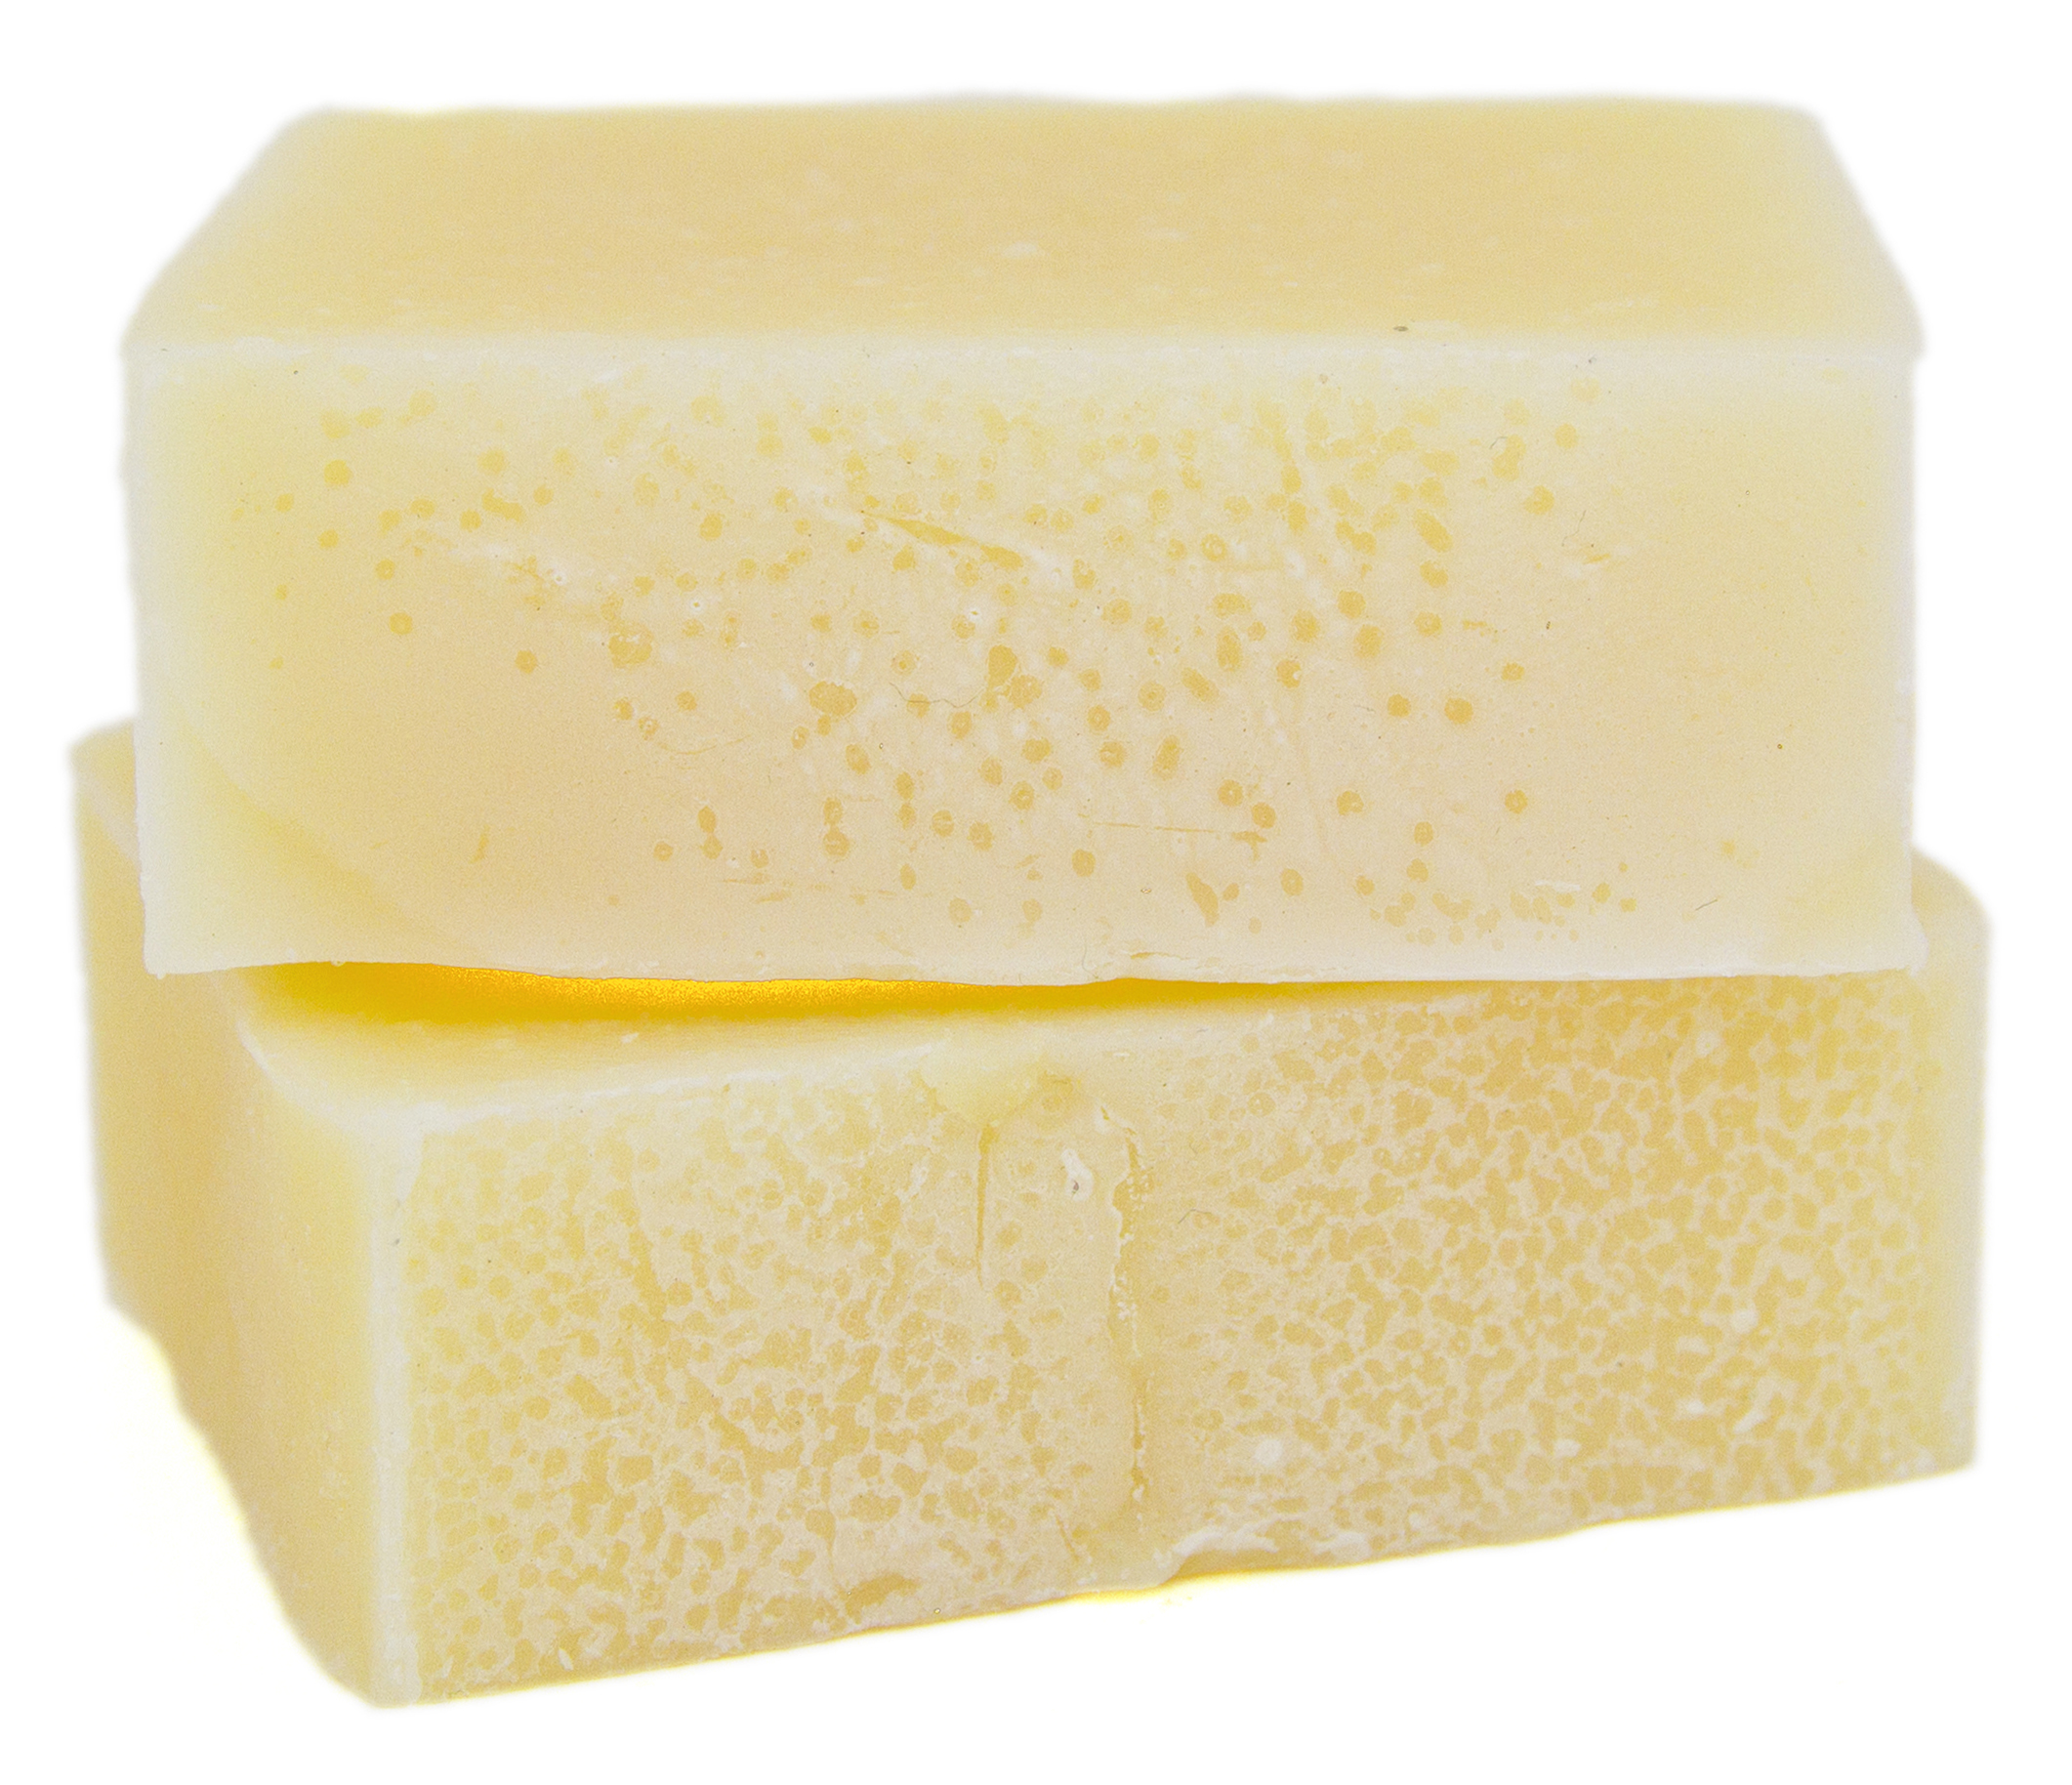 cocoa-butter-soap-raw-cropped.jpg